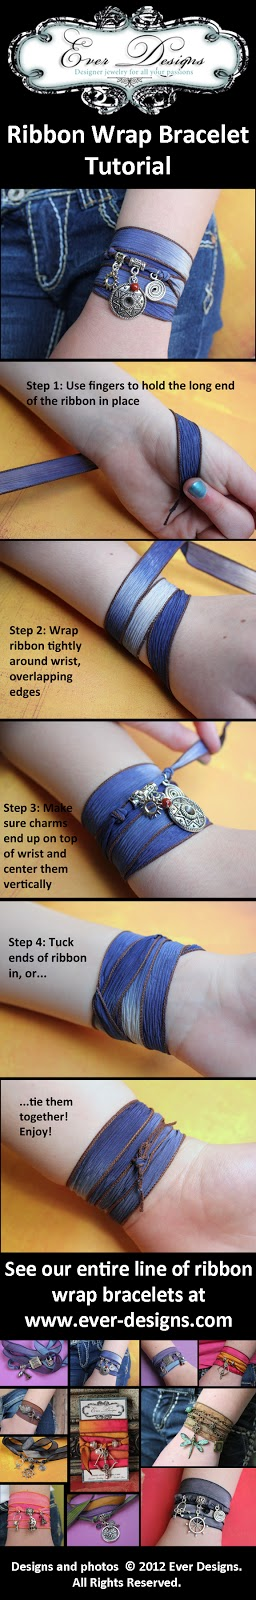 Ribbon Wrap Bracelet Tutorial